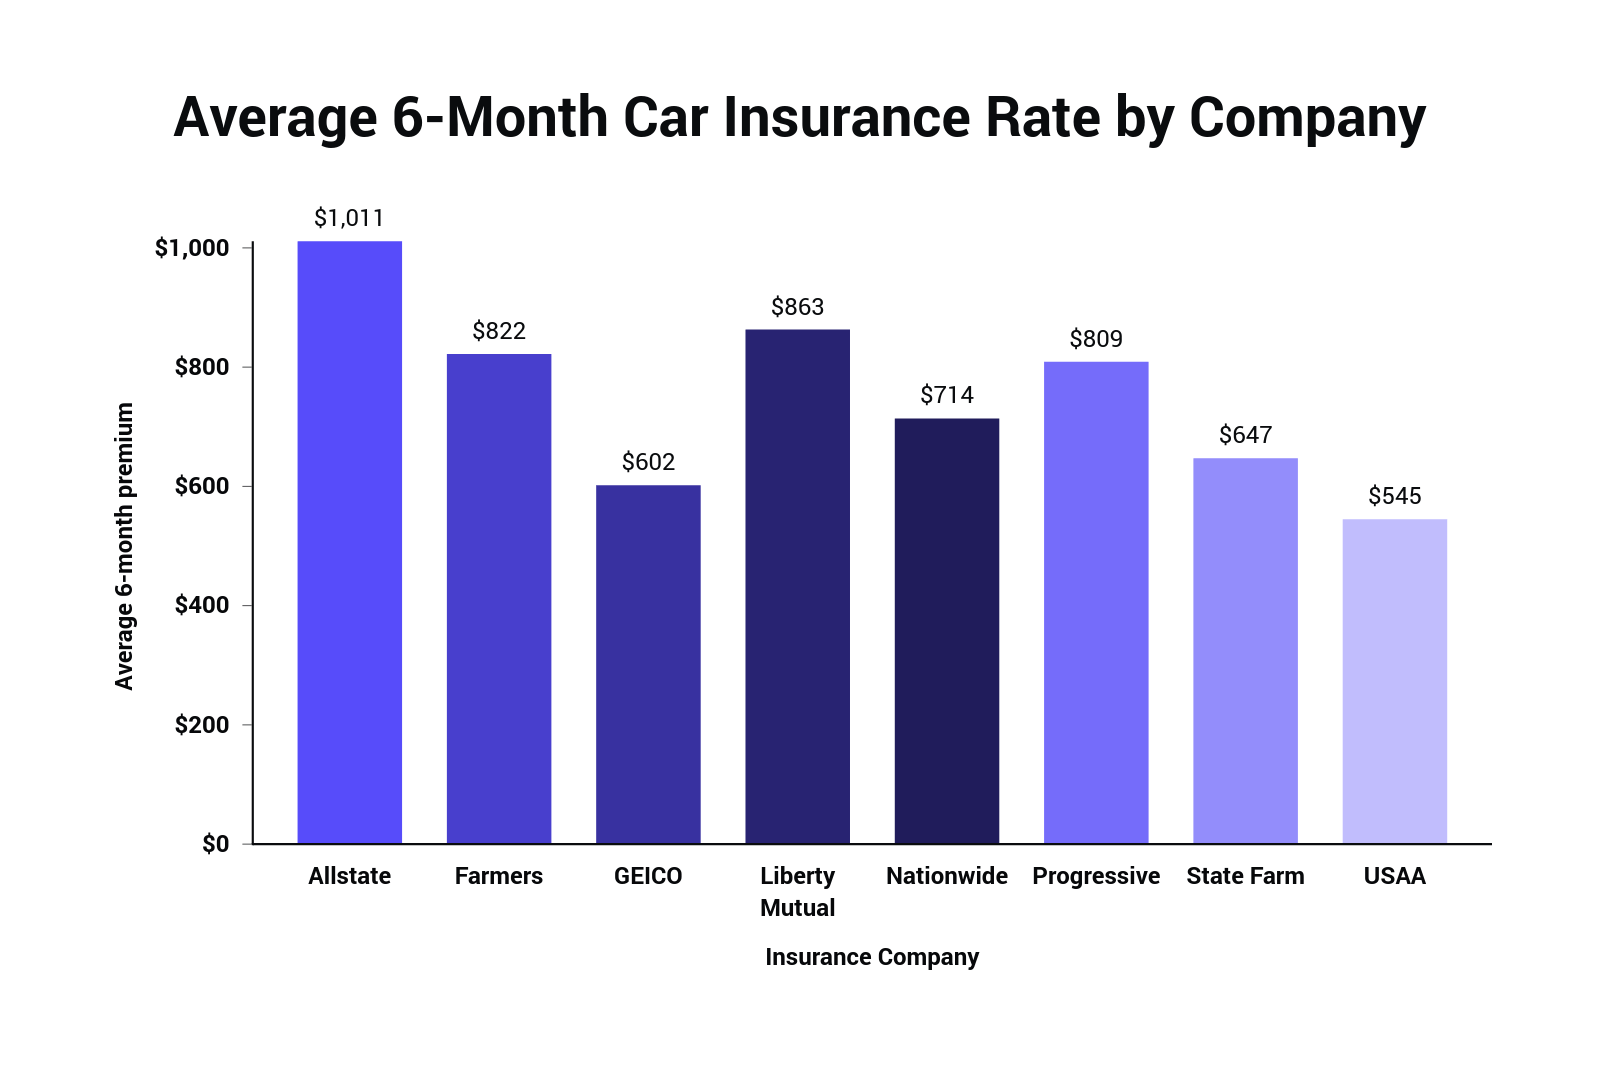 How Much Does Car Insurance Cost on Average?